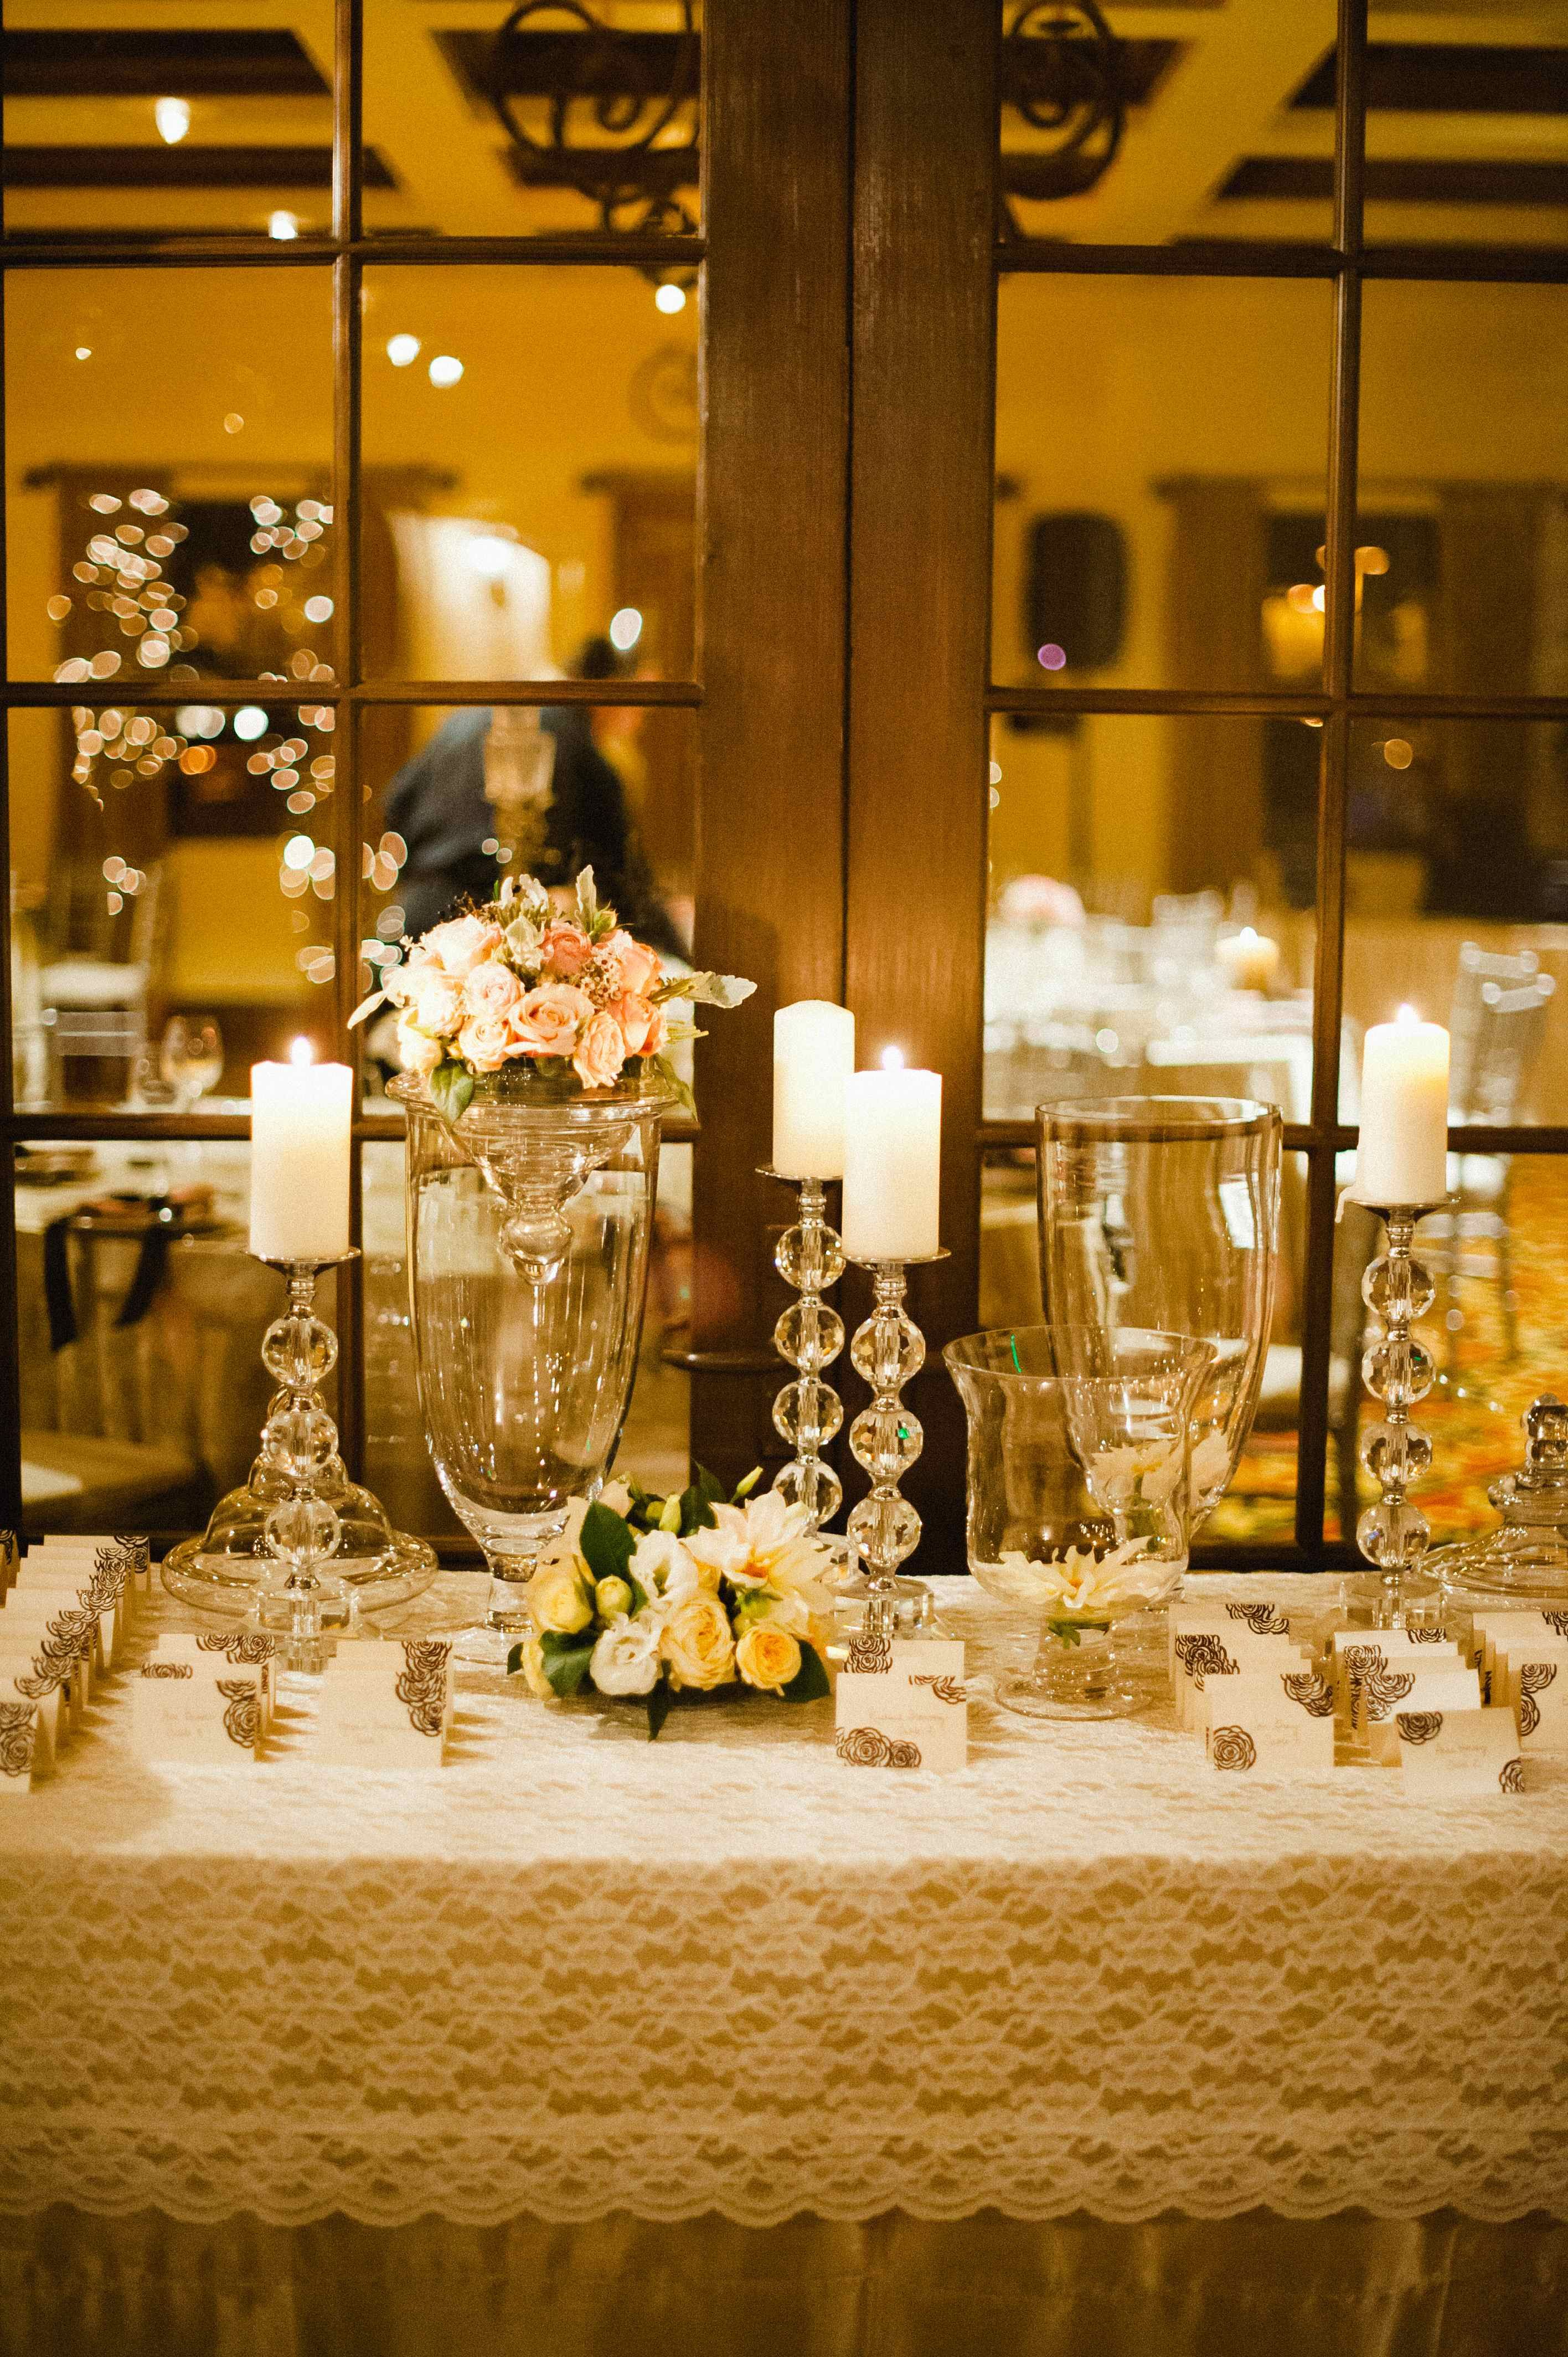 Oooh I Love The Candle Holders Place Card Table